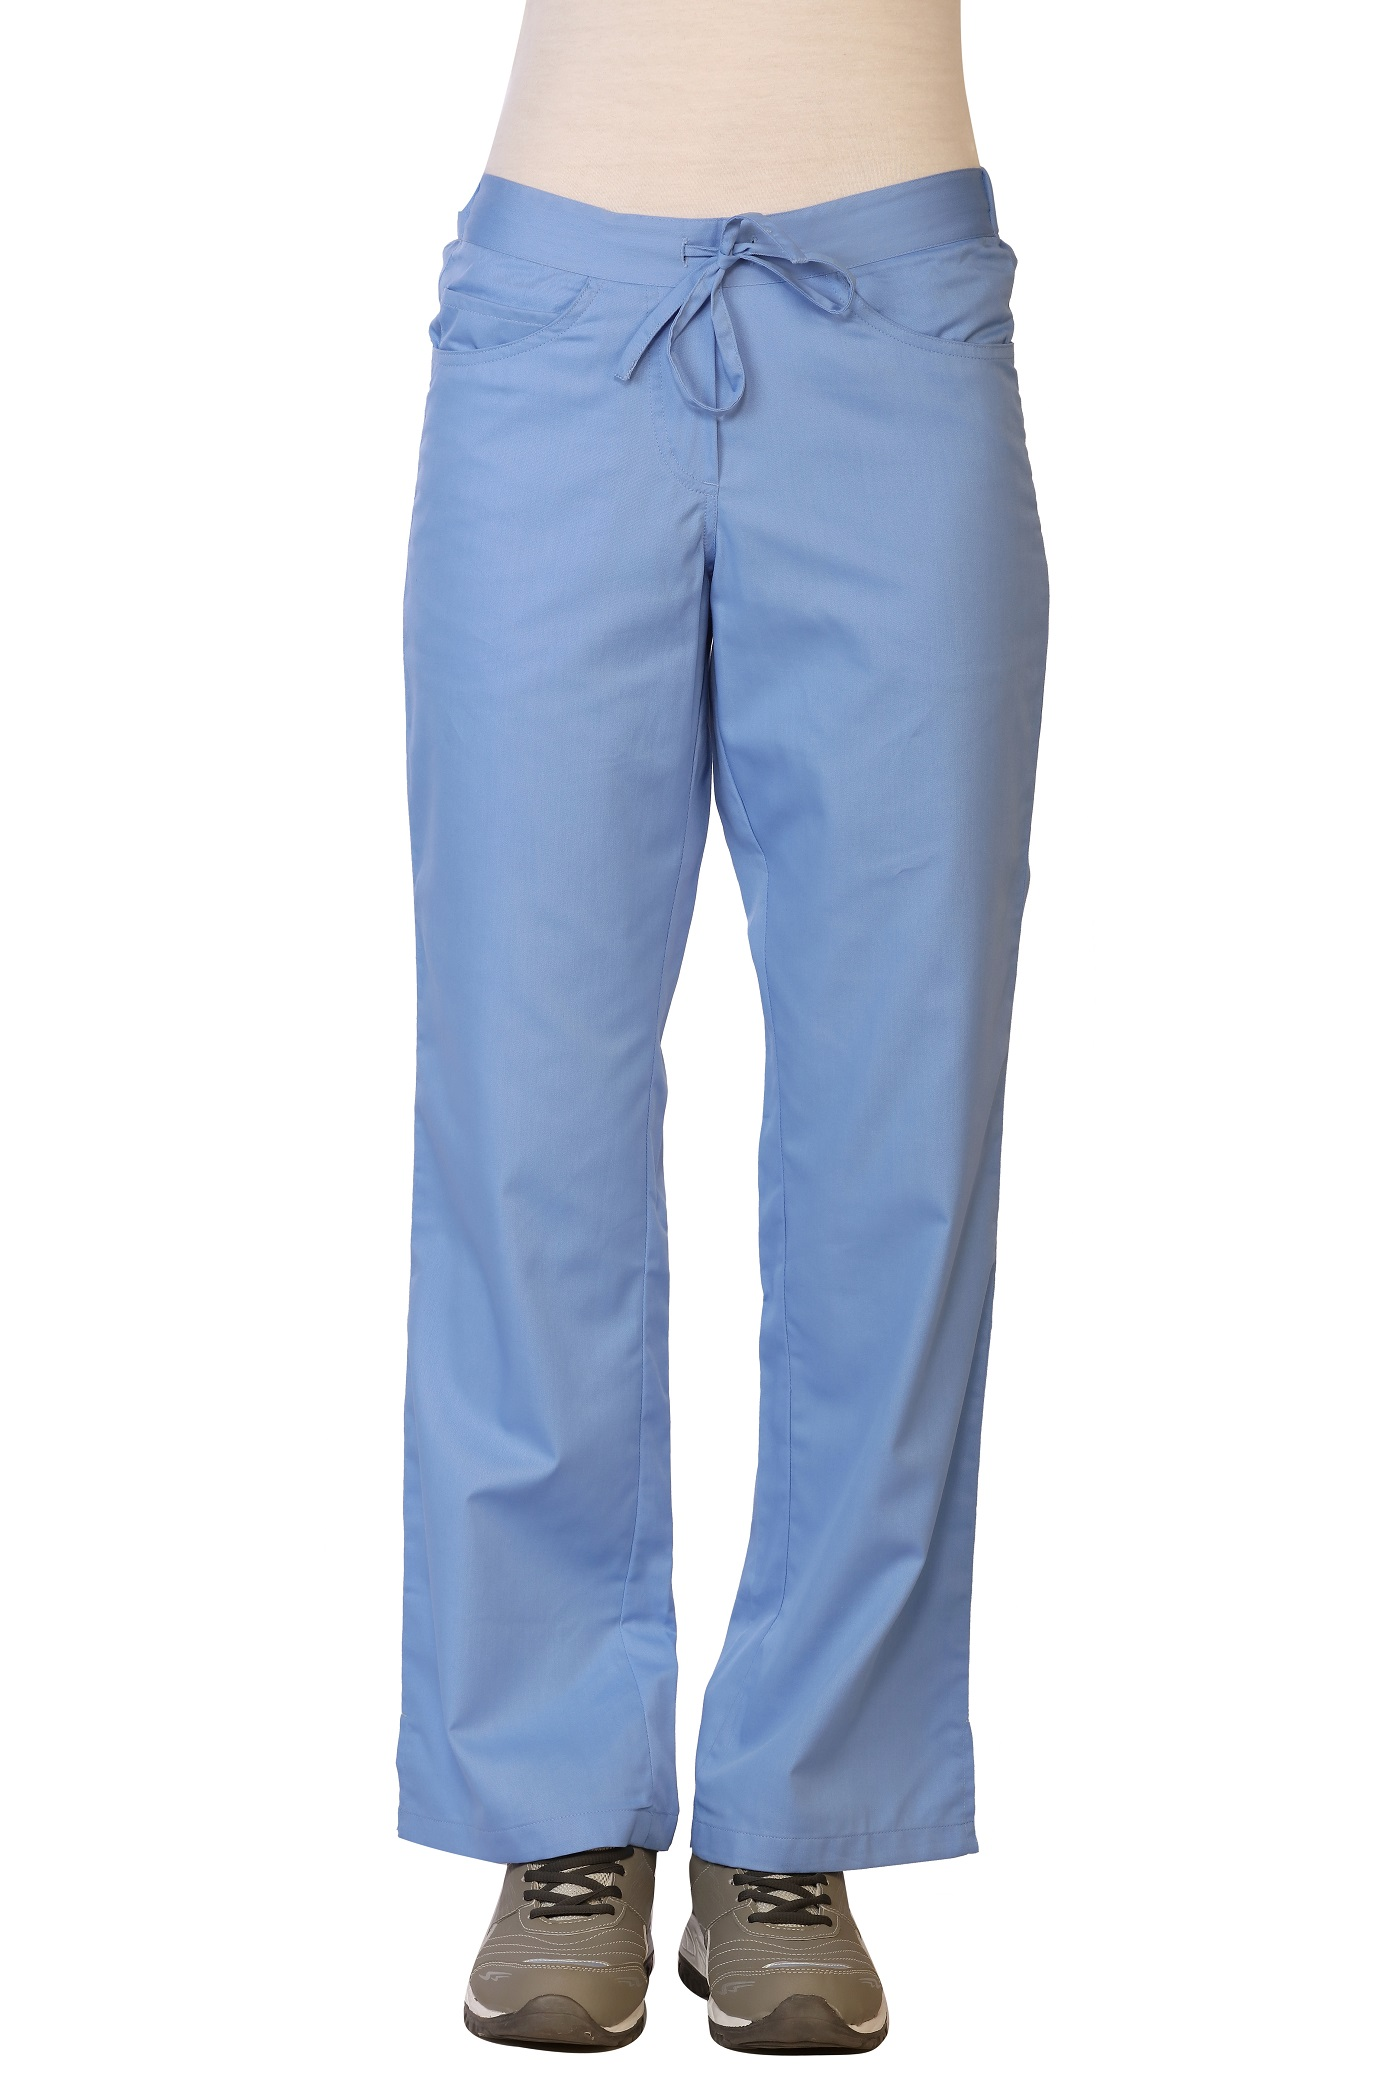 Women's Pants, LifeThreads Classic Collection